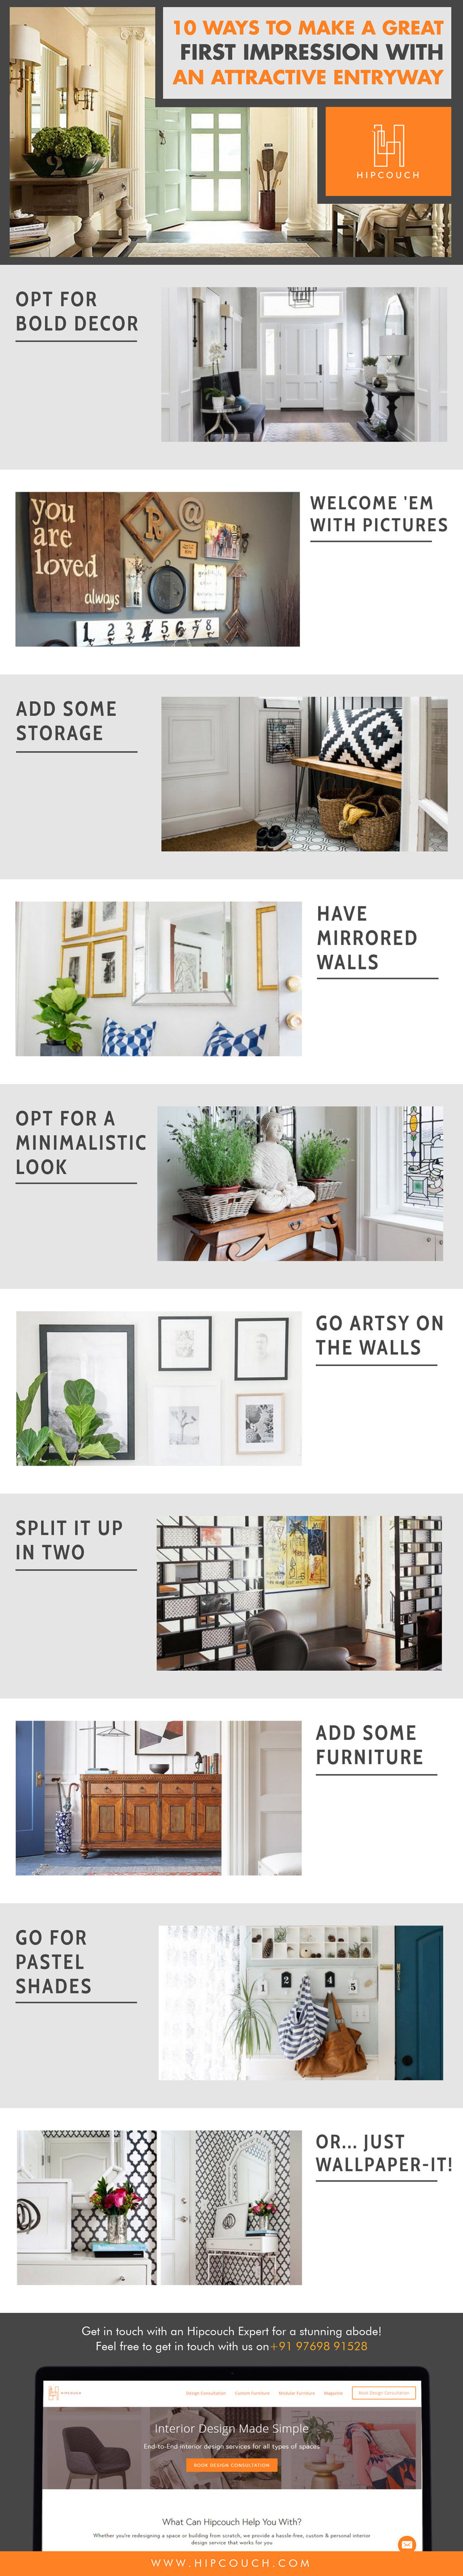 10-tips-to-creating-stunning-entryways.jpg